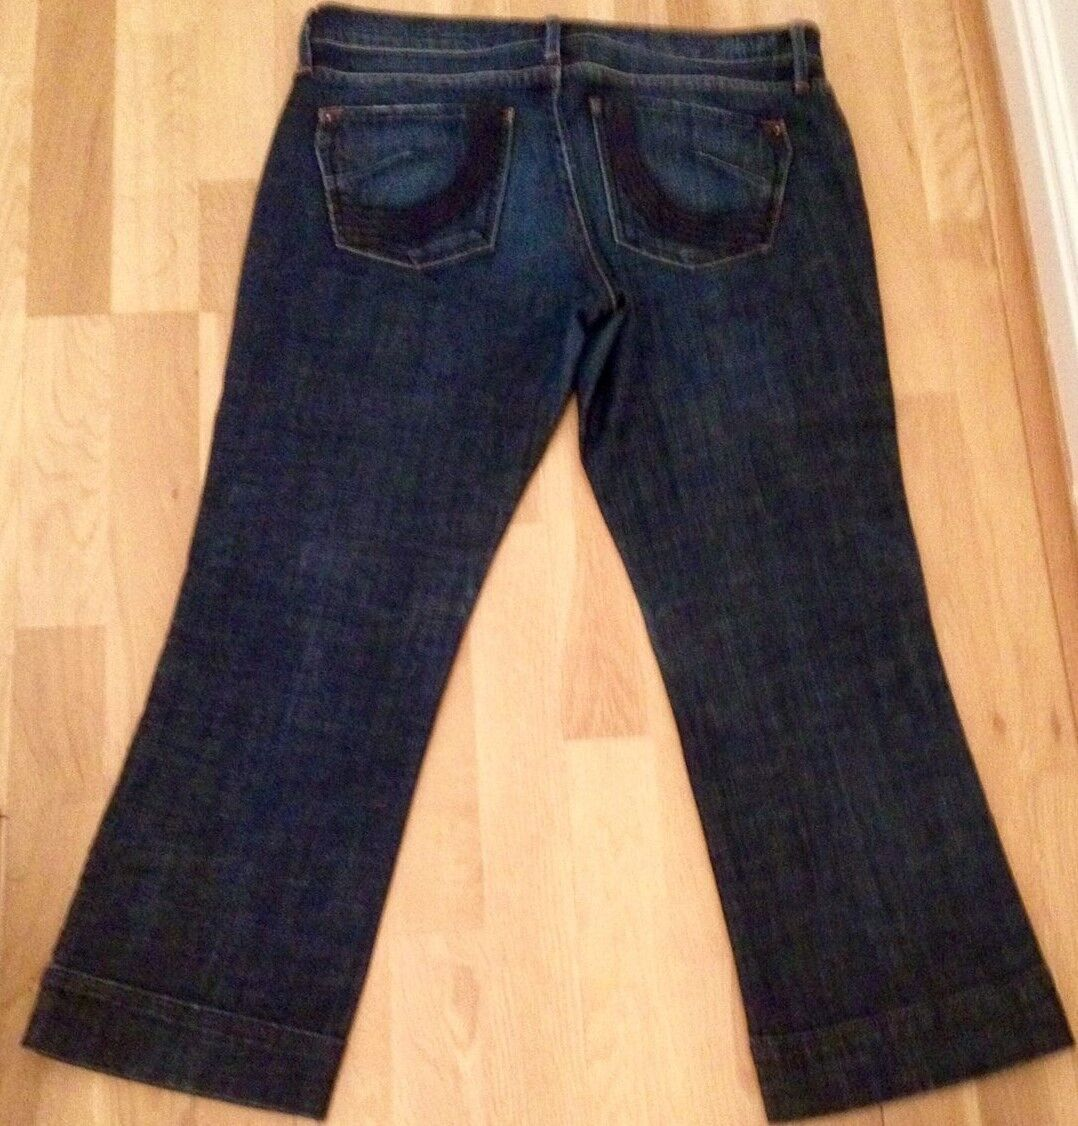 Ladies Gorgeous Dark bluee Denim US JAMES Jeans 3 4 Length Stunning Fit size 28